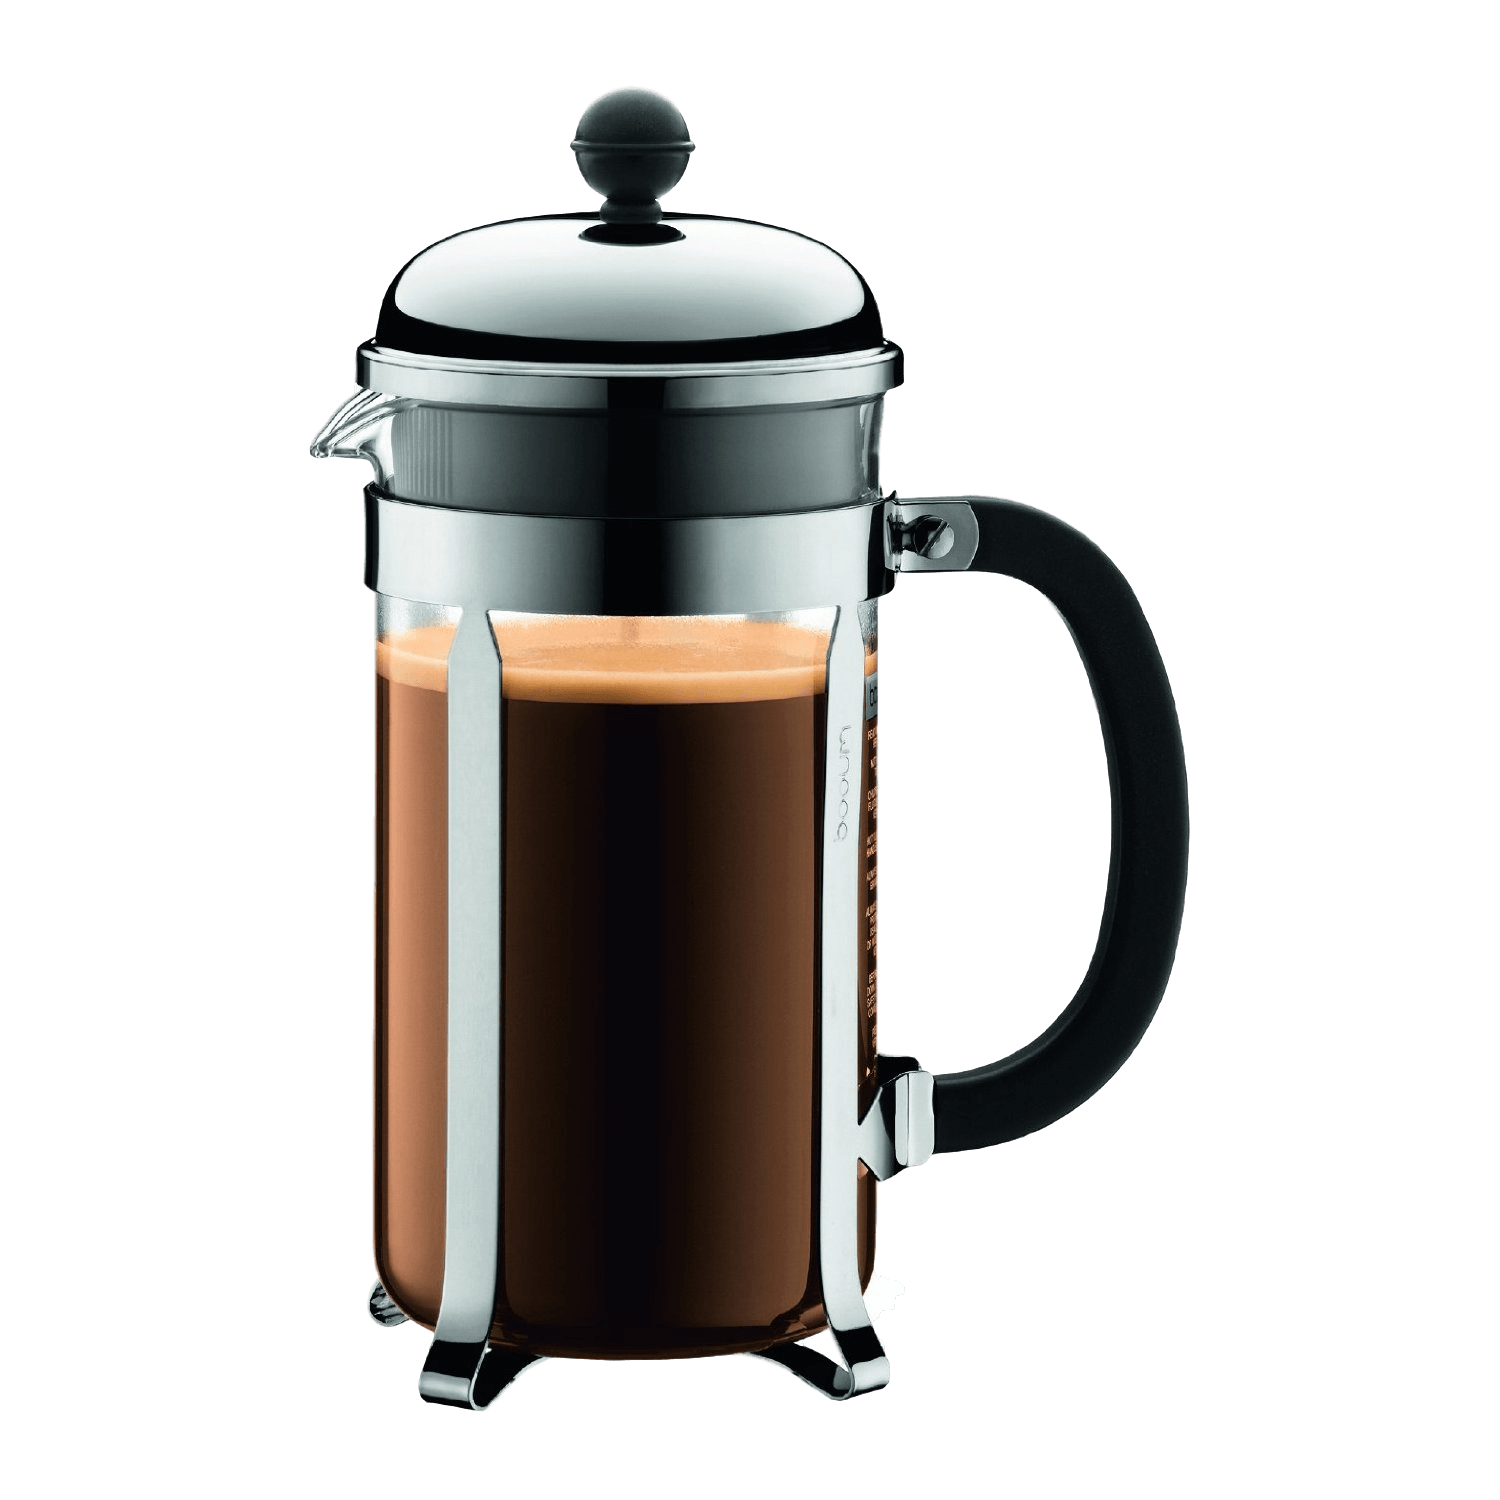 Bodum french press replacement glass - Bodum Chambord 8 Cup French Press Coffee Maker 34 Oz Chrome